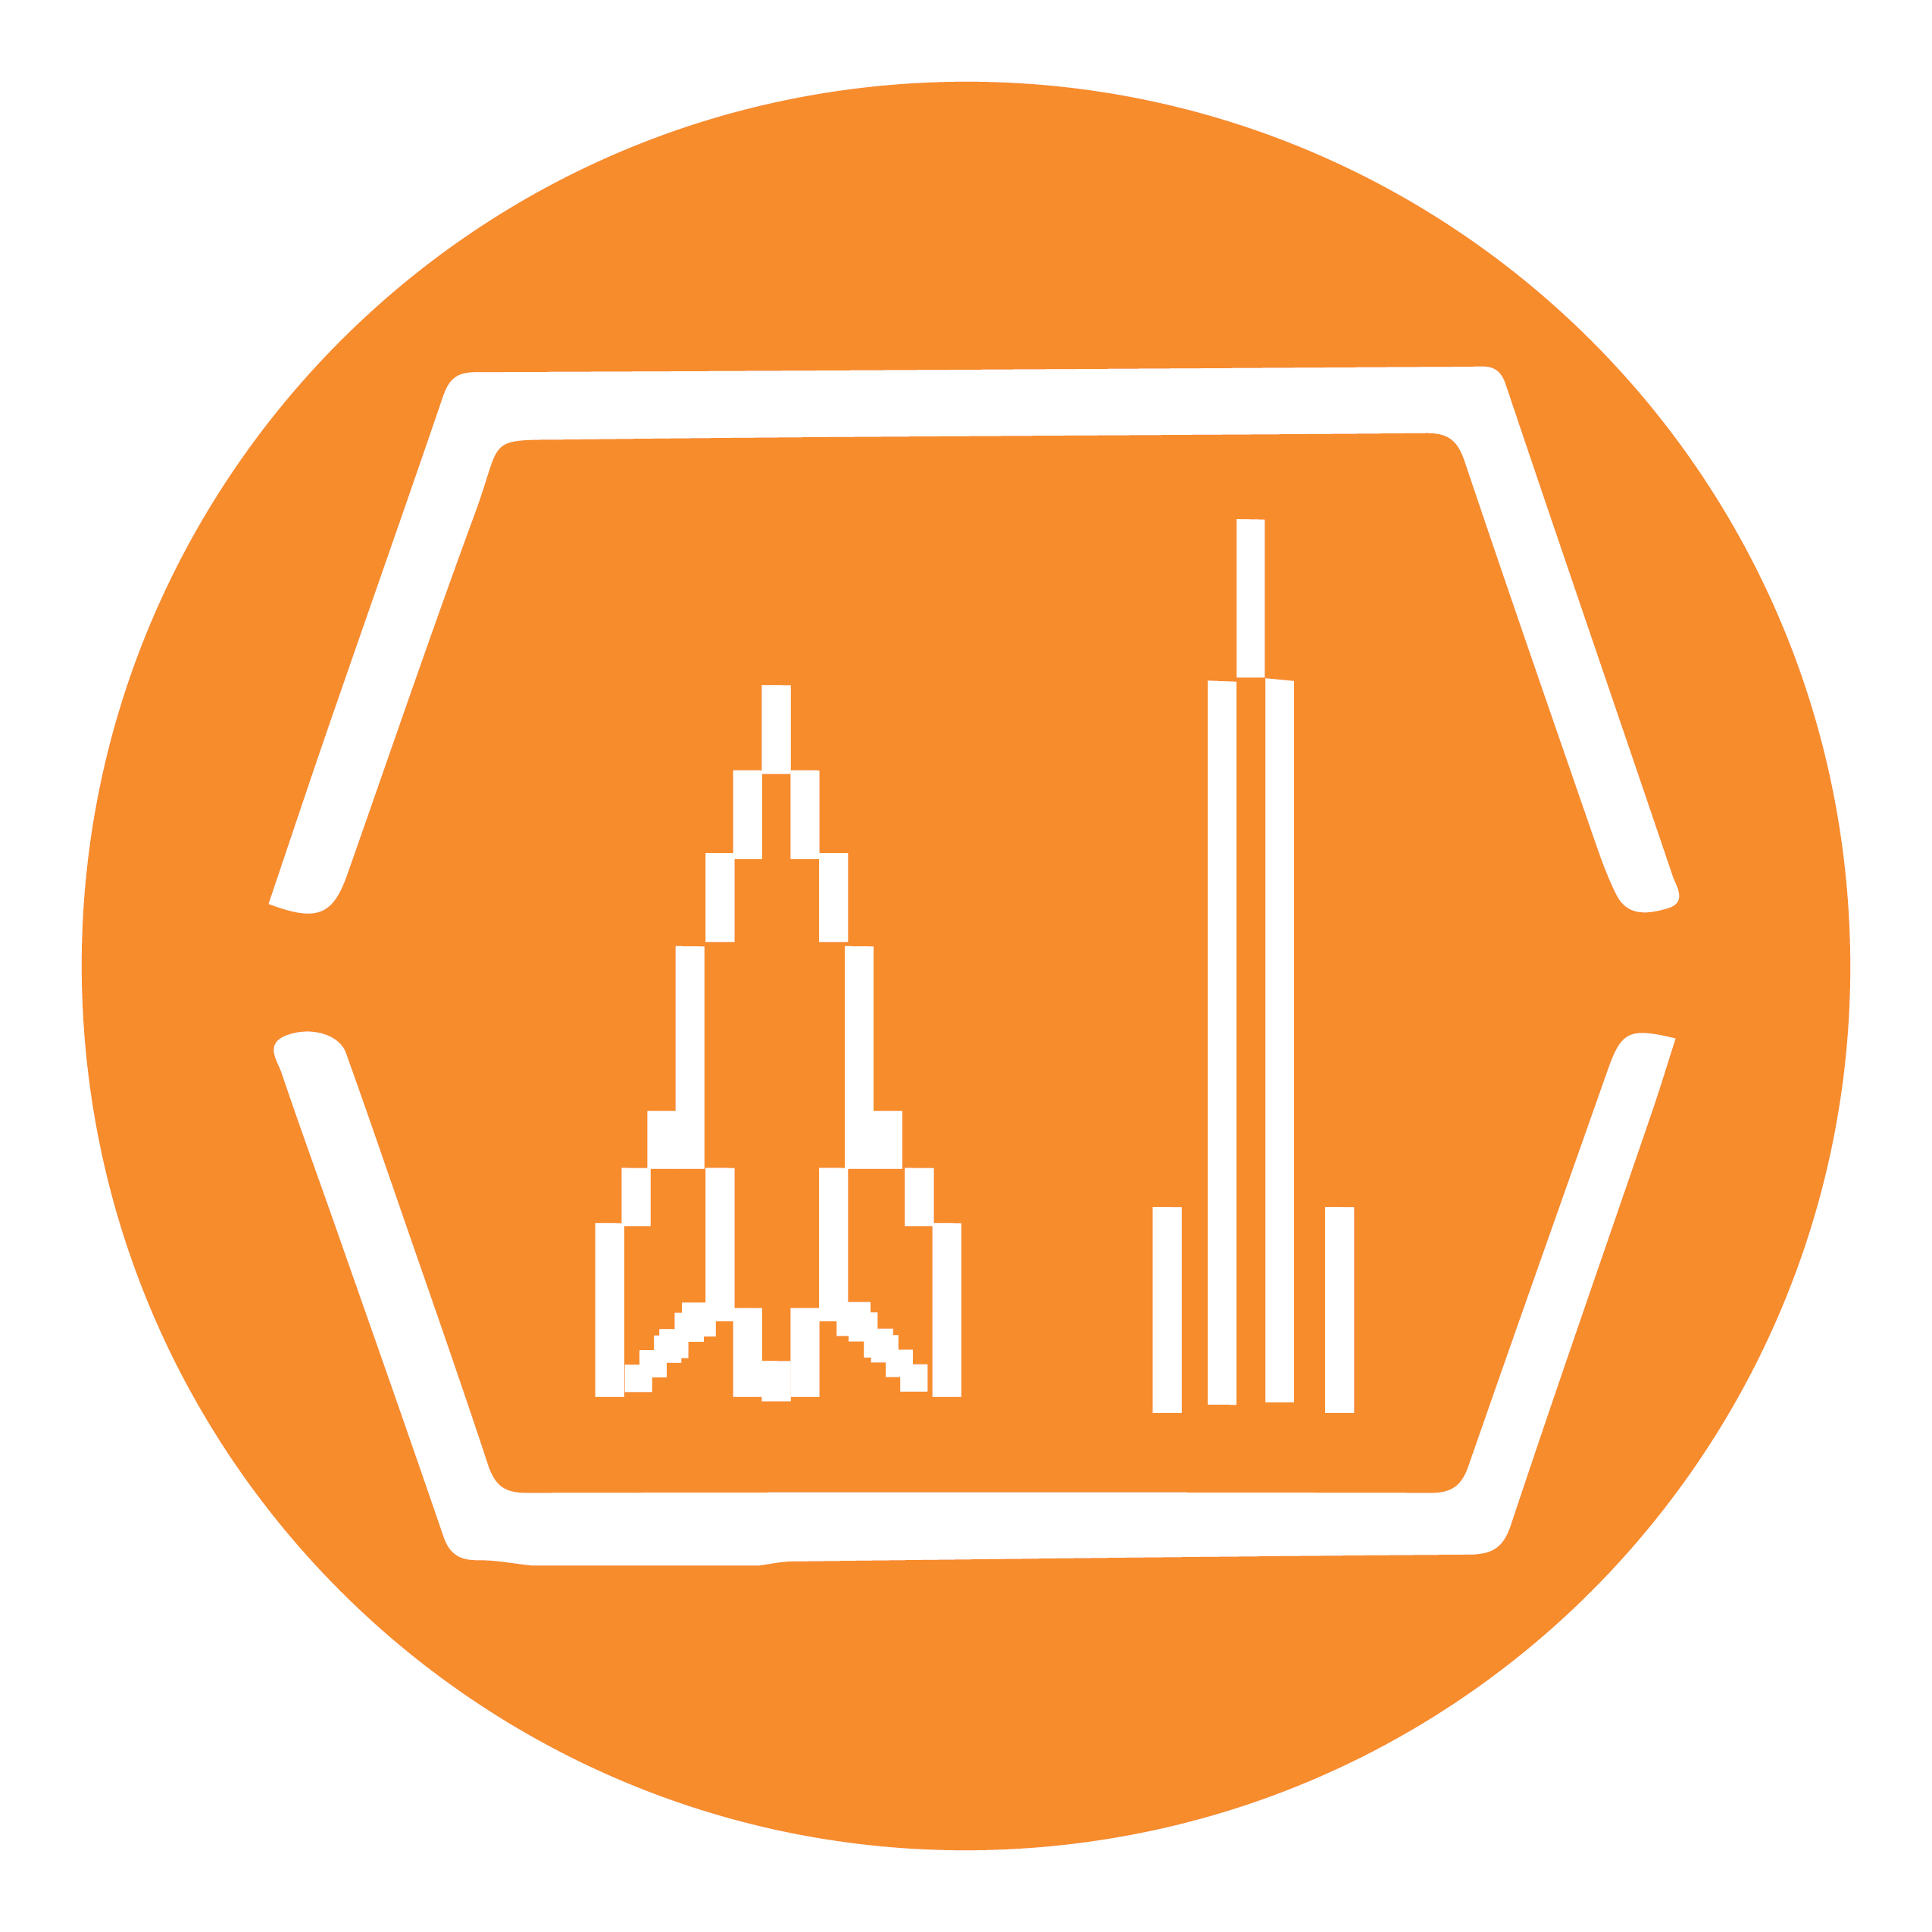 An orange circle contains two pixelated rockets within a hexagonal frame